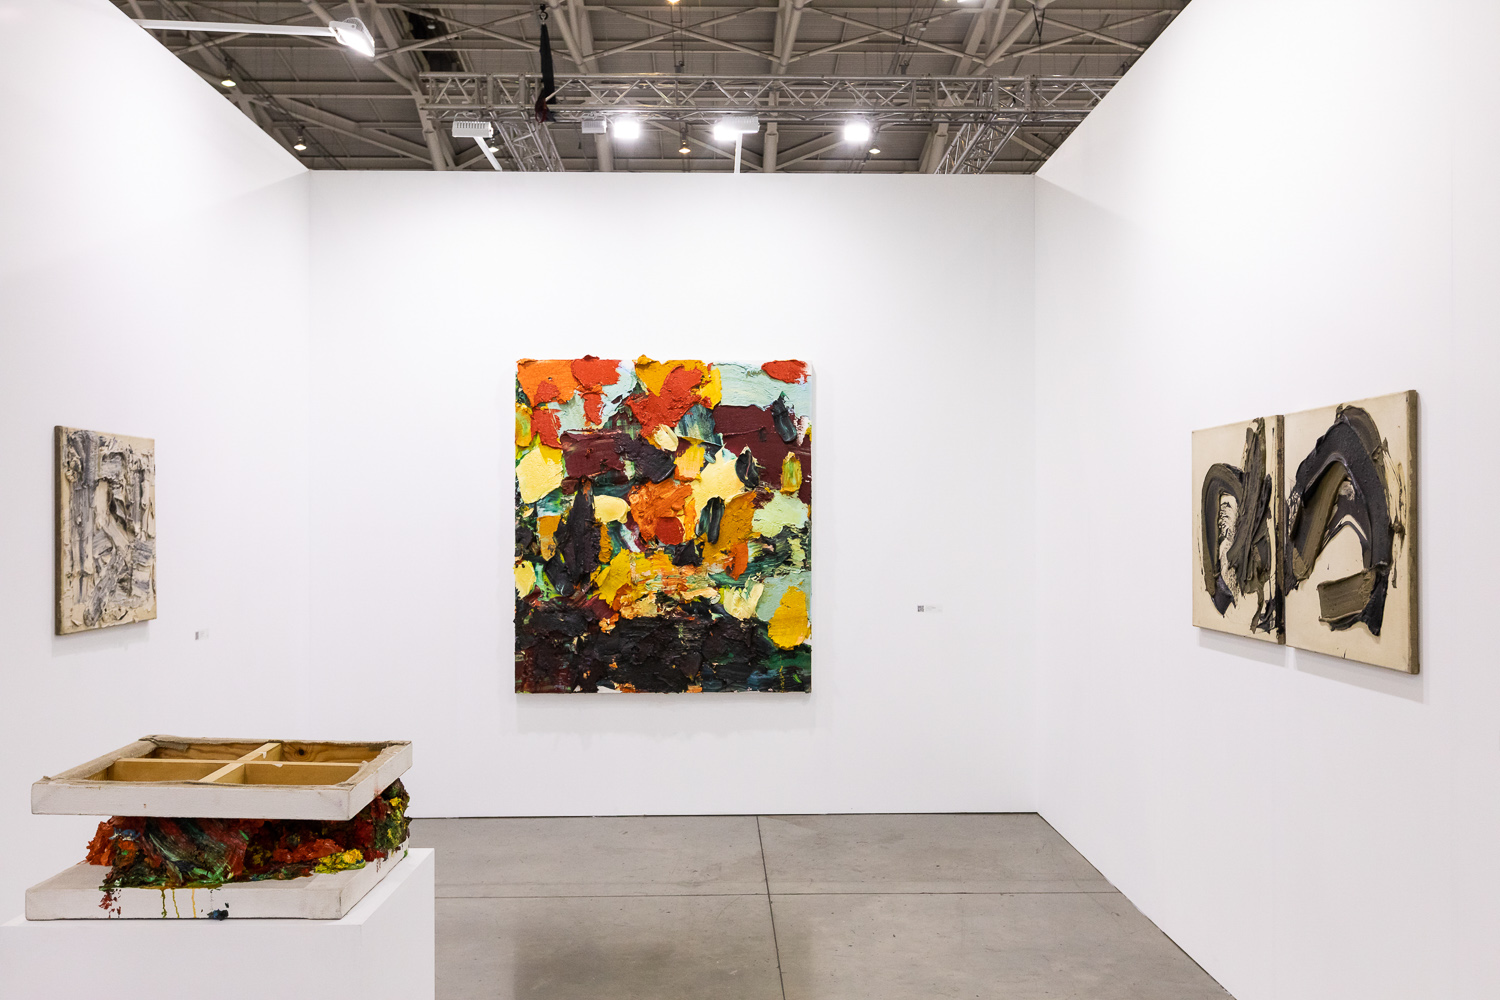 Installation view of Pearl Lam Galleries' booth. Image courtesy of Taipei Dangdai.